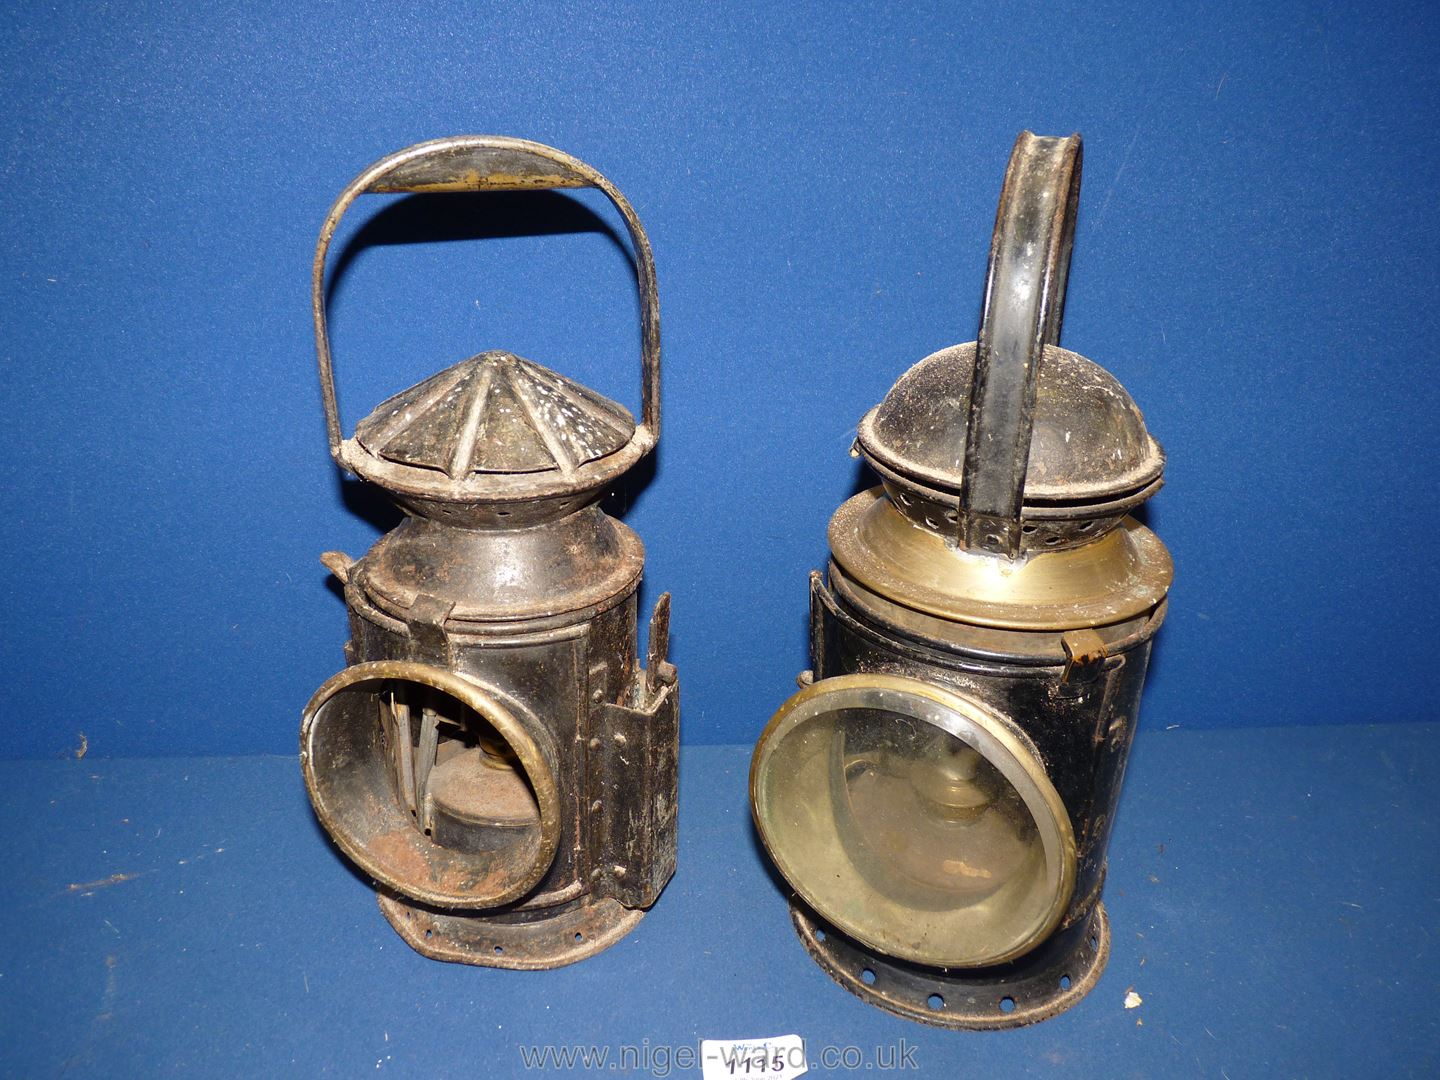 Two Railway lamps, a/f.